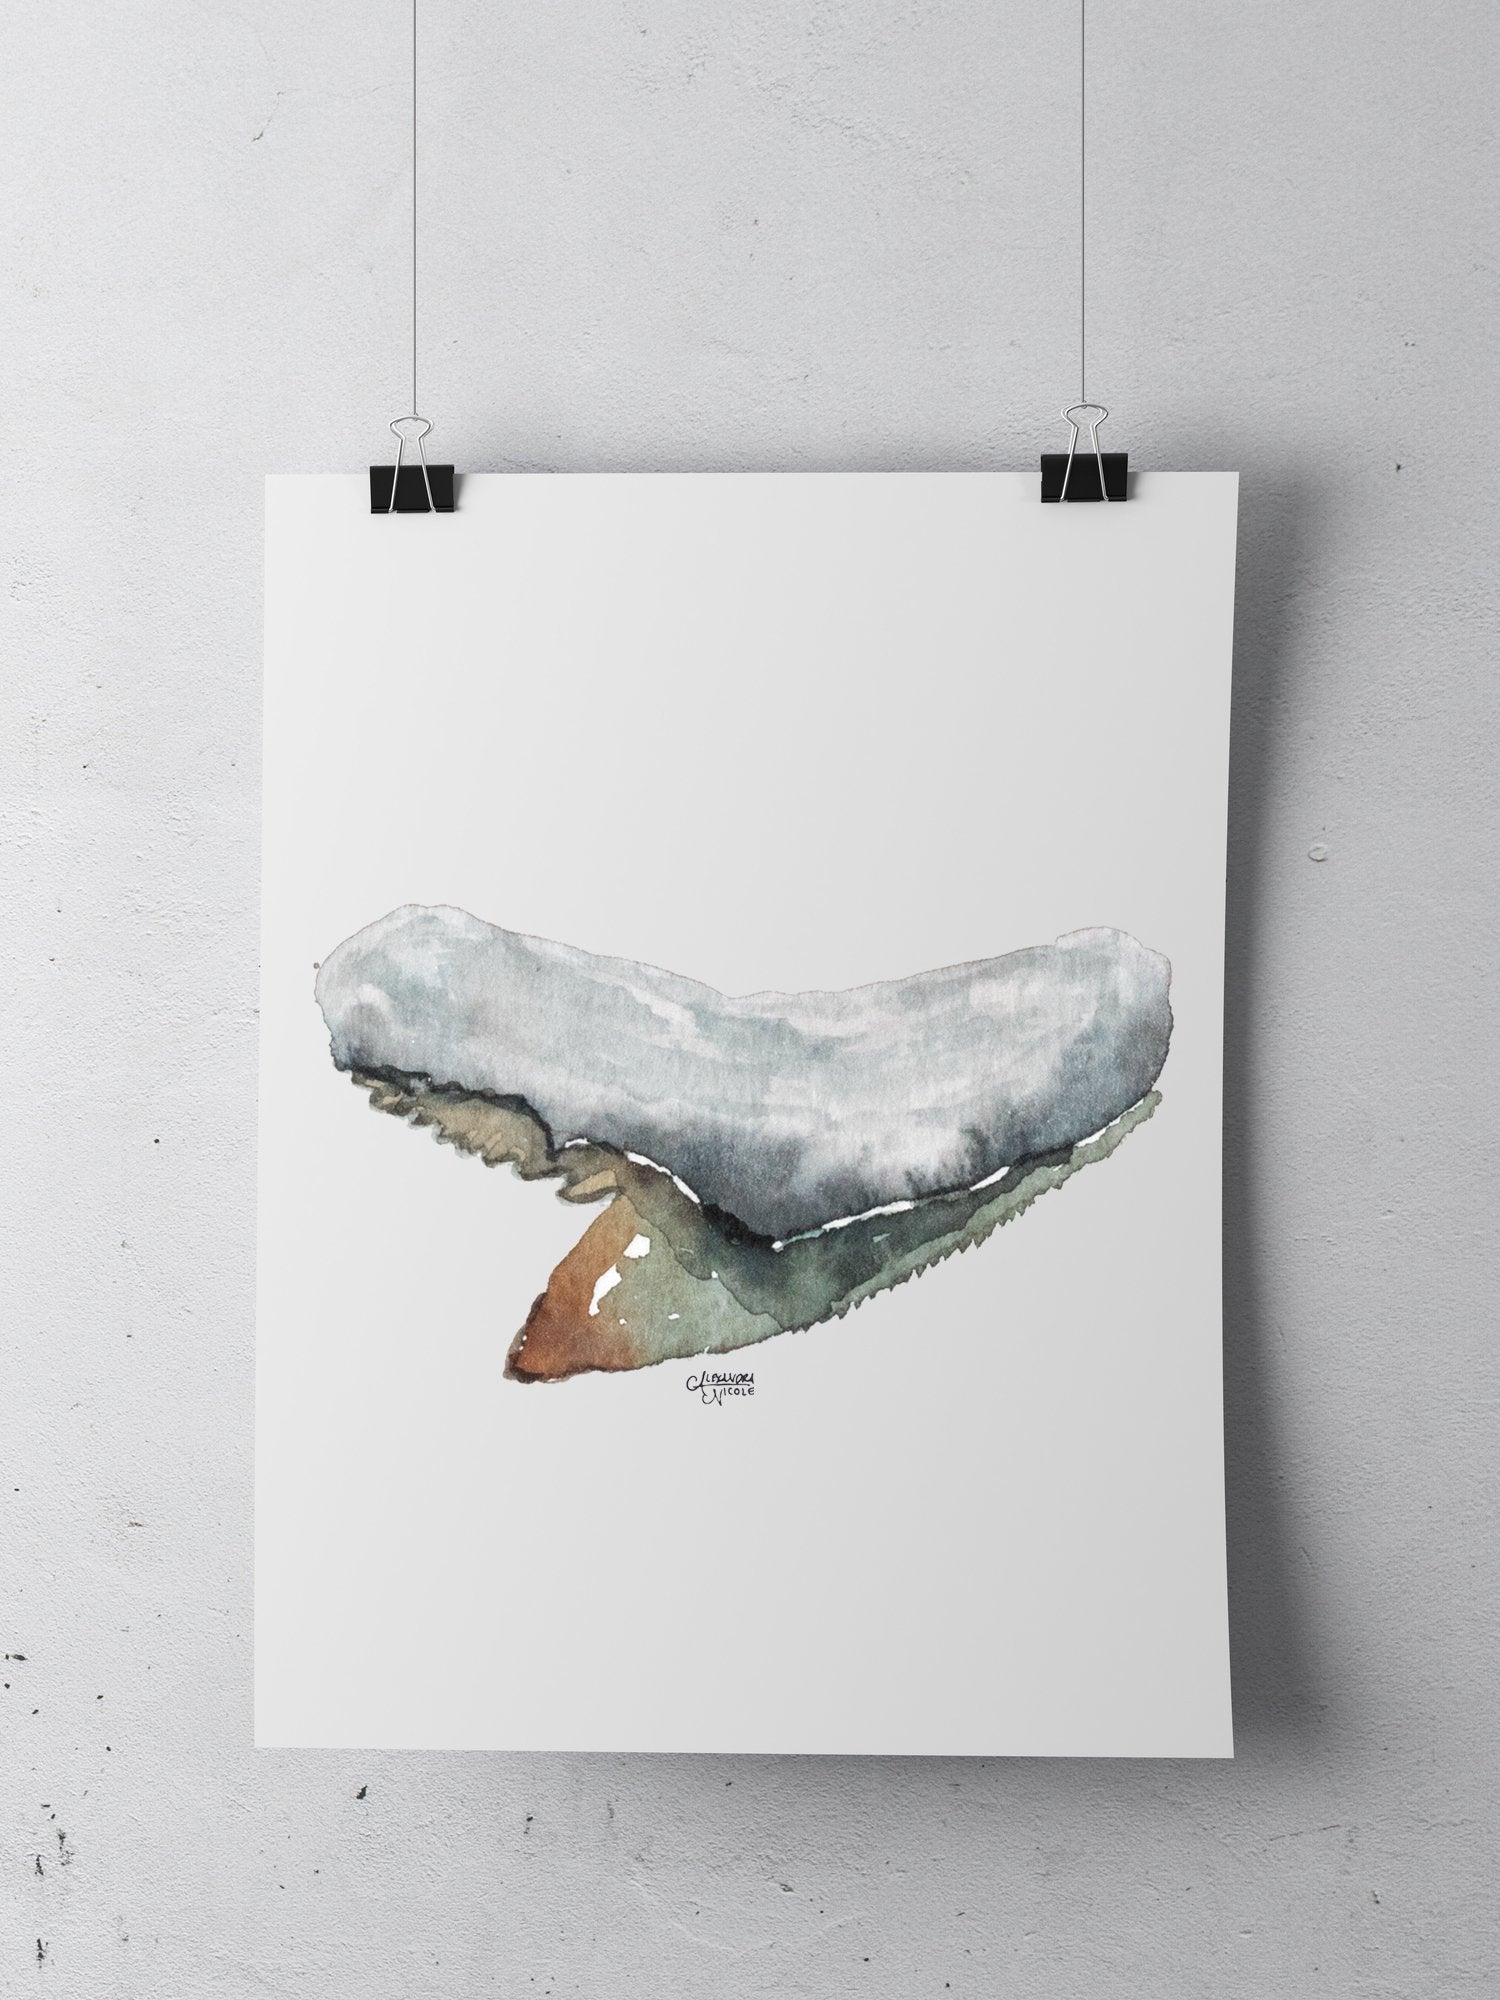 Tiger Shark Tooth Art Print - Shark Tooth No. 7 by Coastal Artist Alexandra Nicole $27